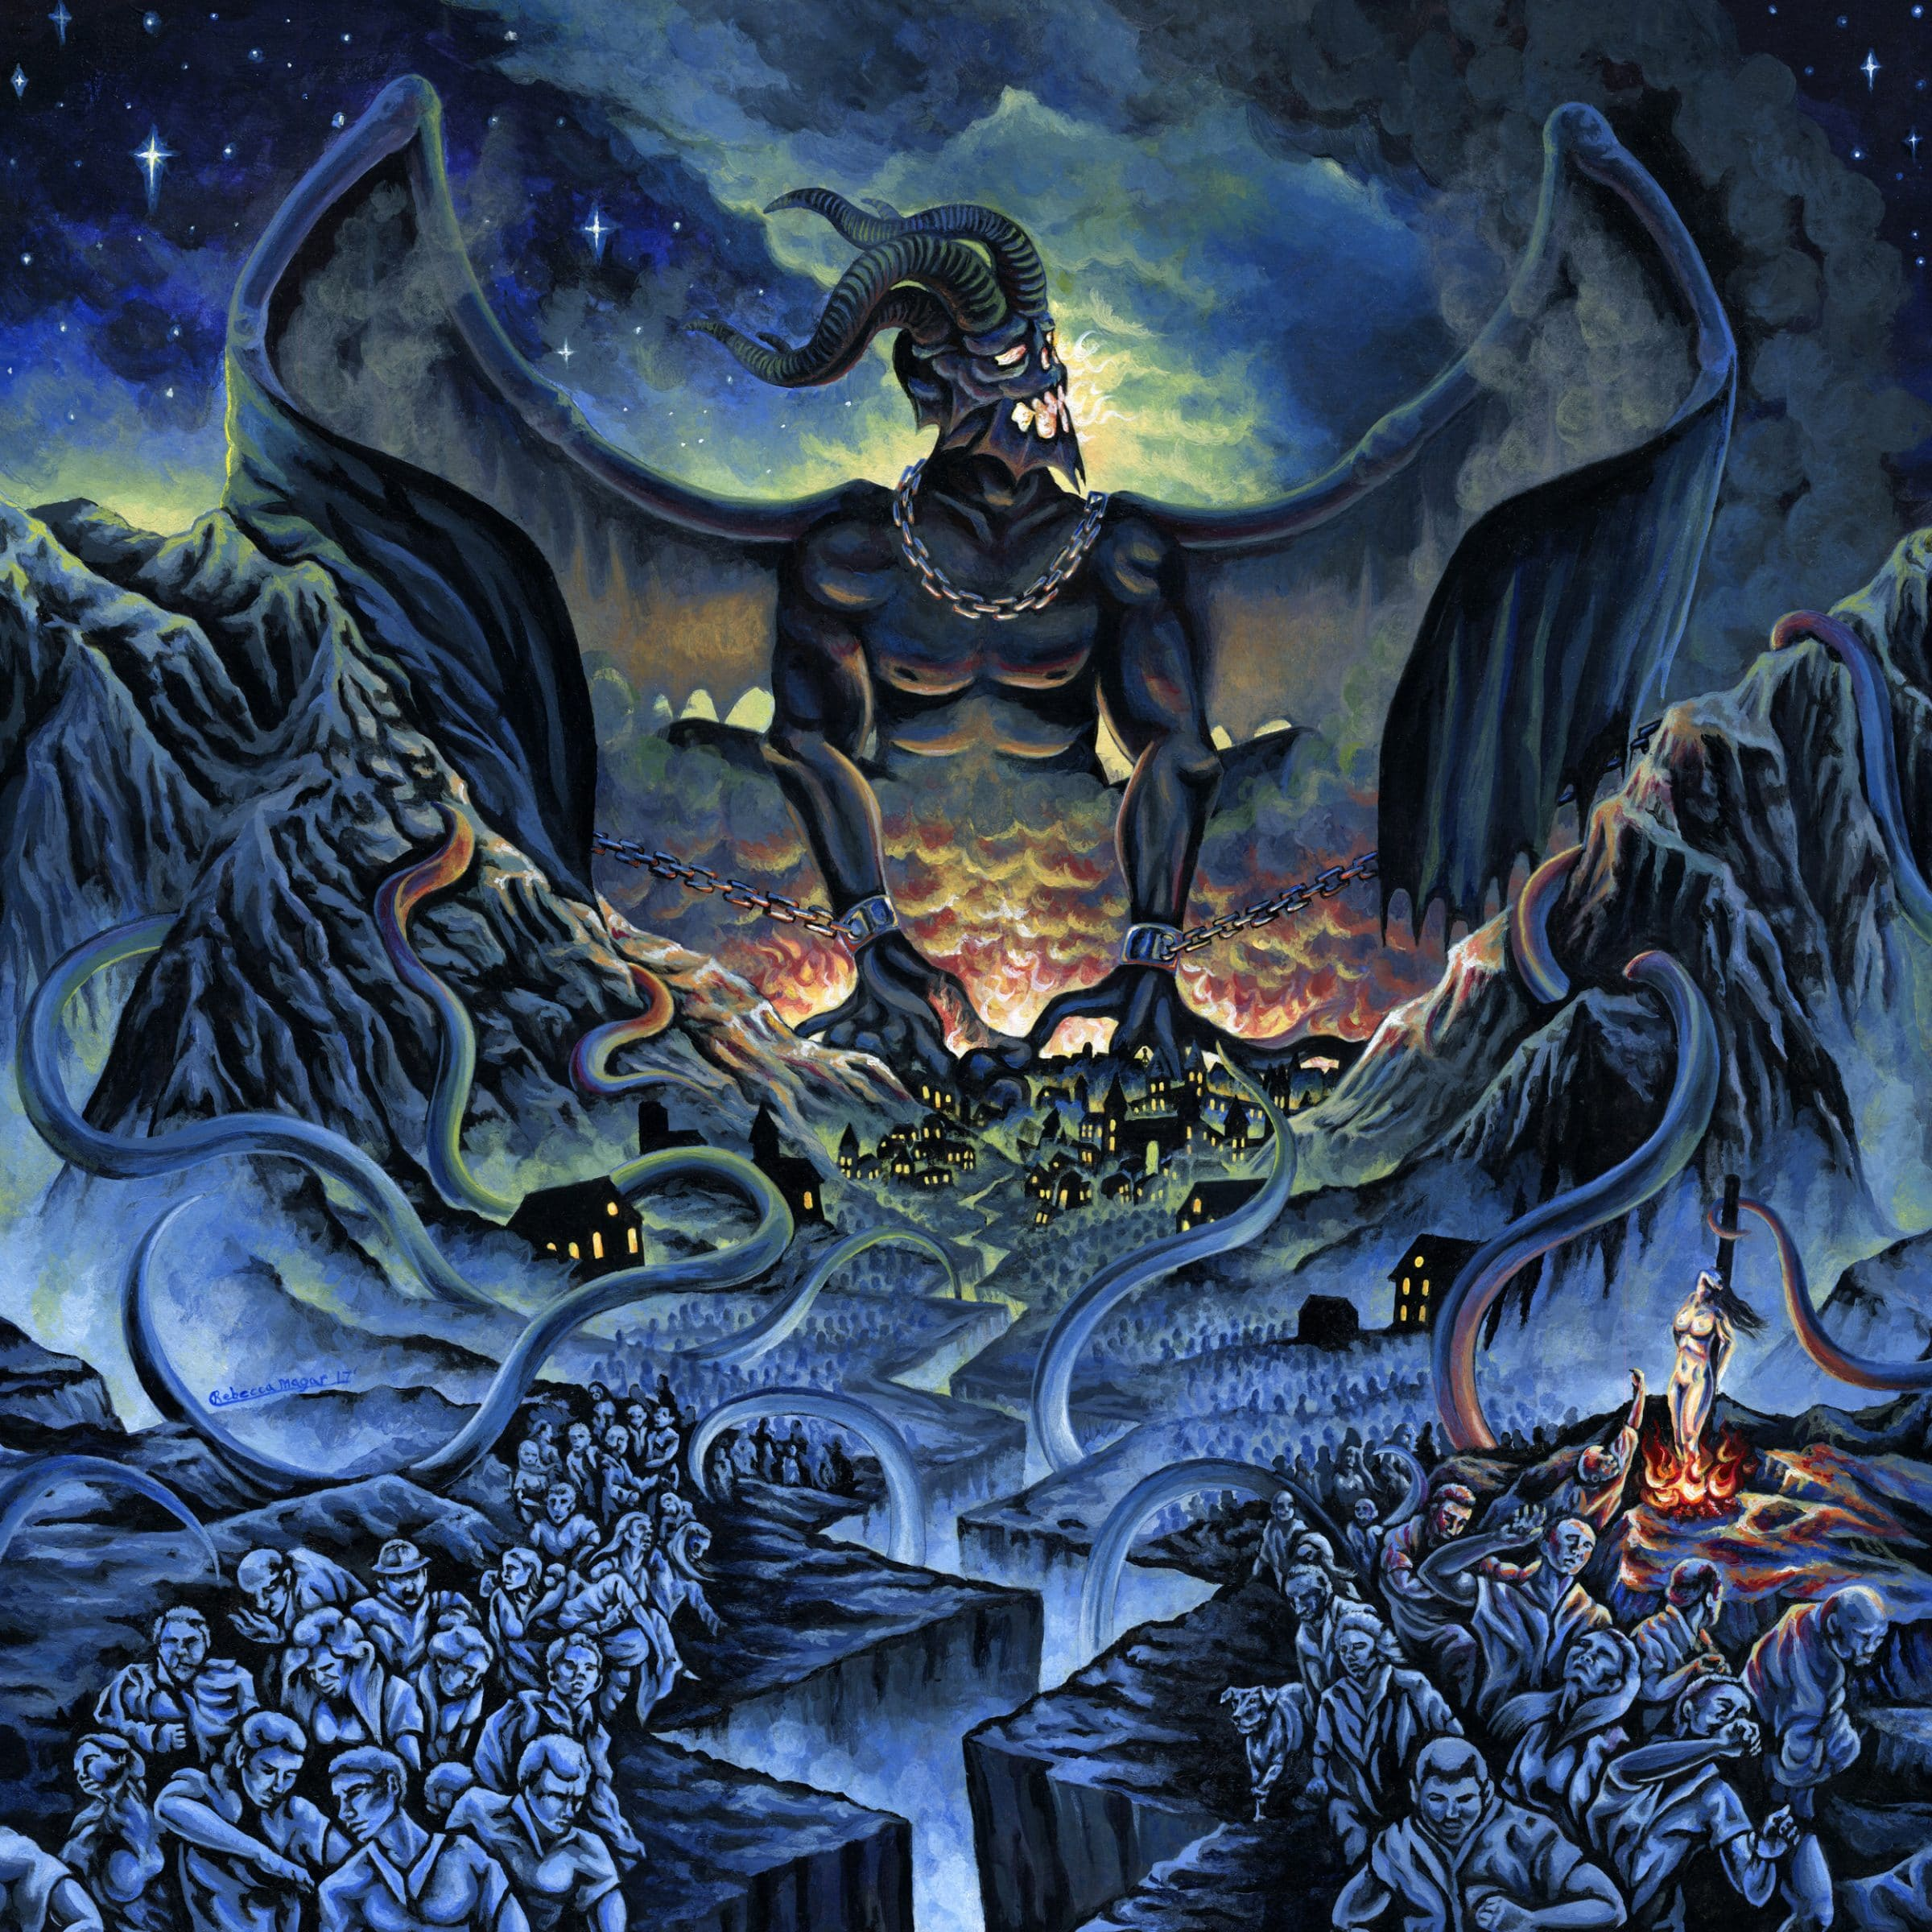 Kingdom of Fear Album Cover Artwork for Wrath of Typhon by Rebecca Magar